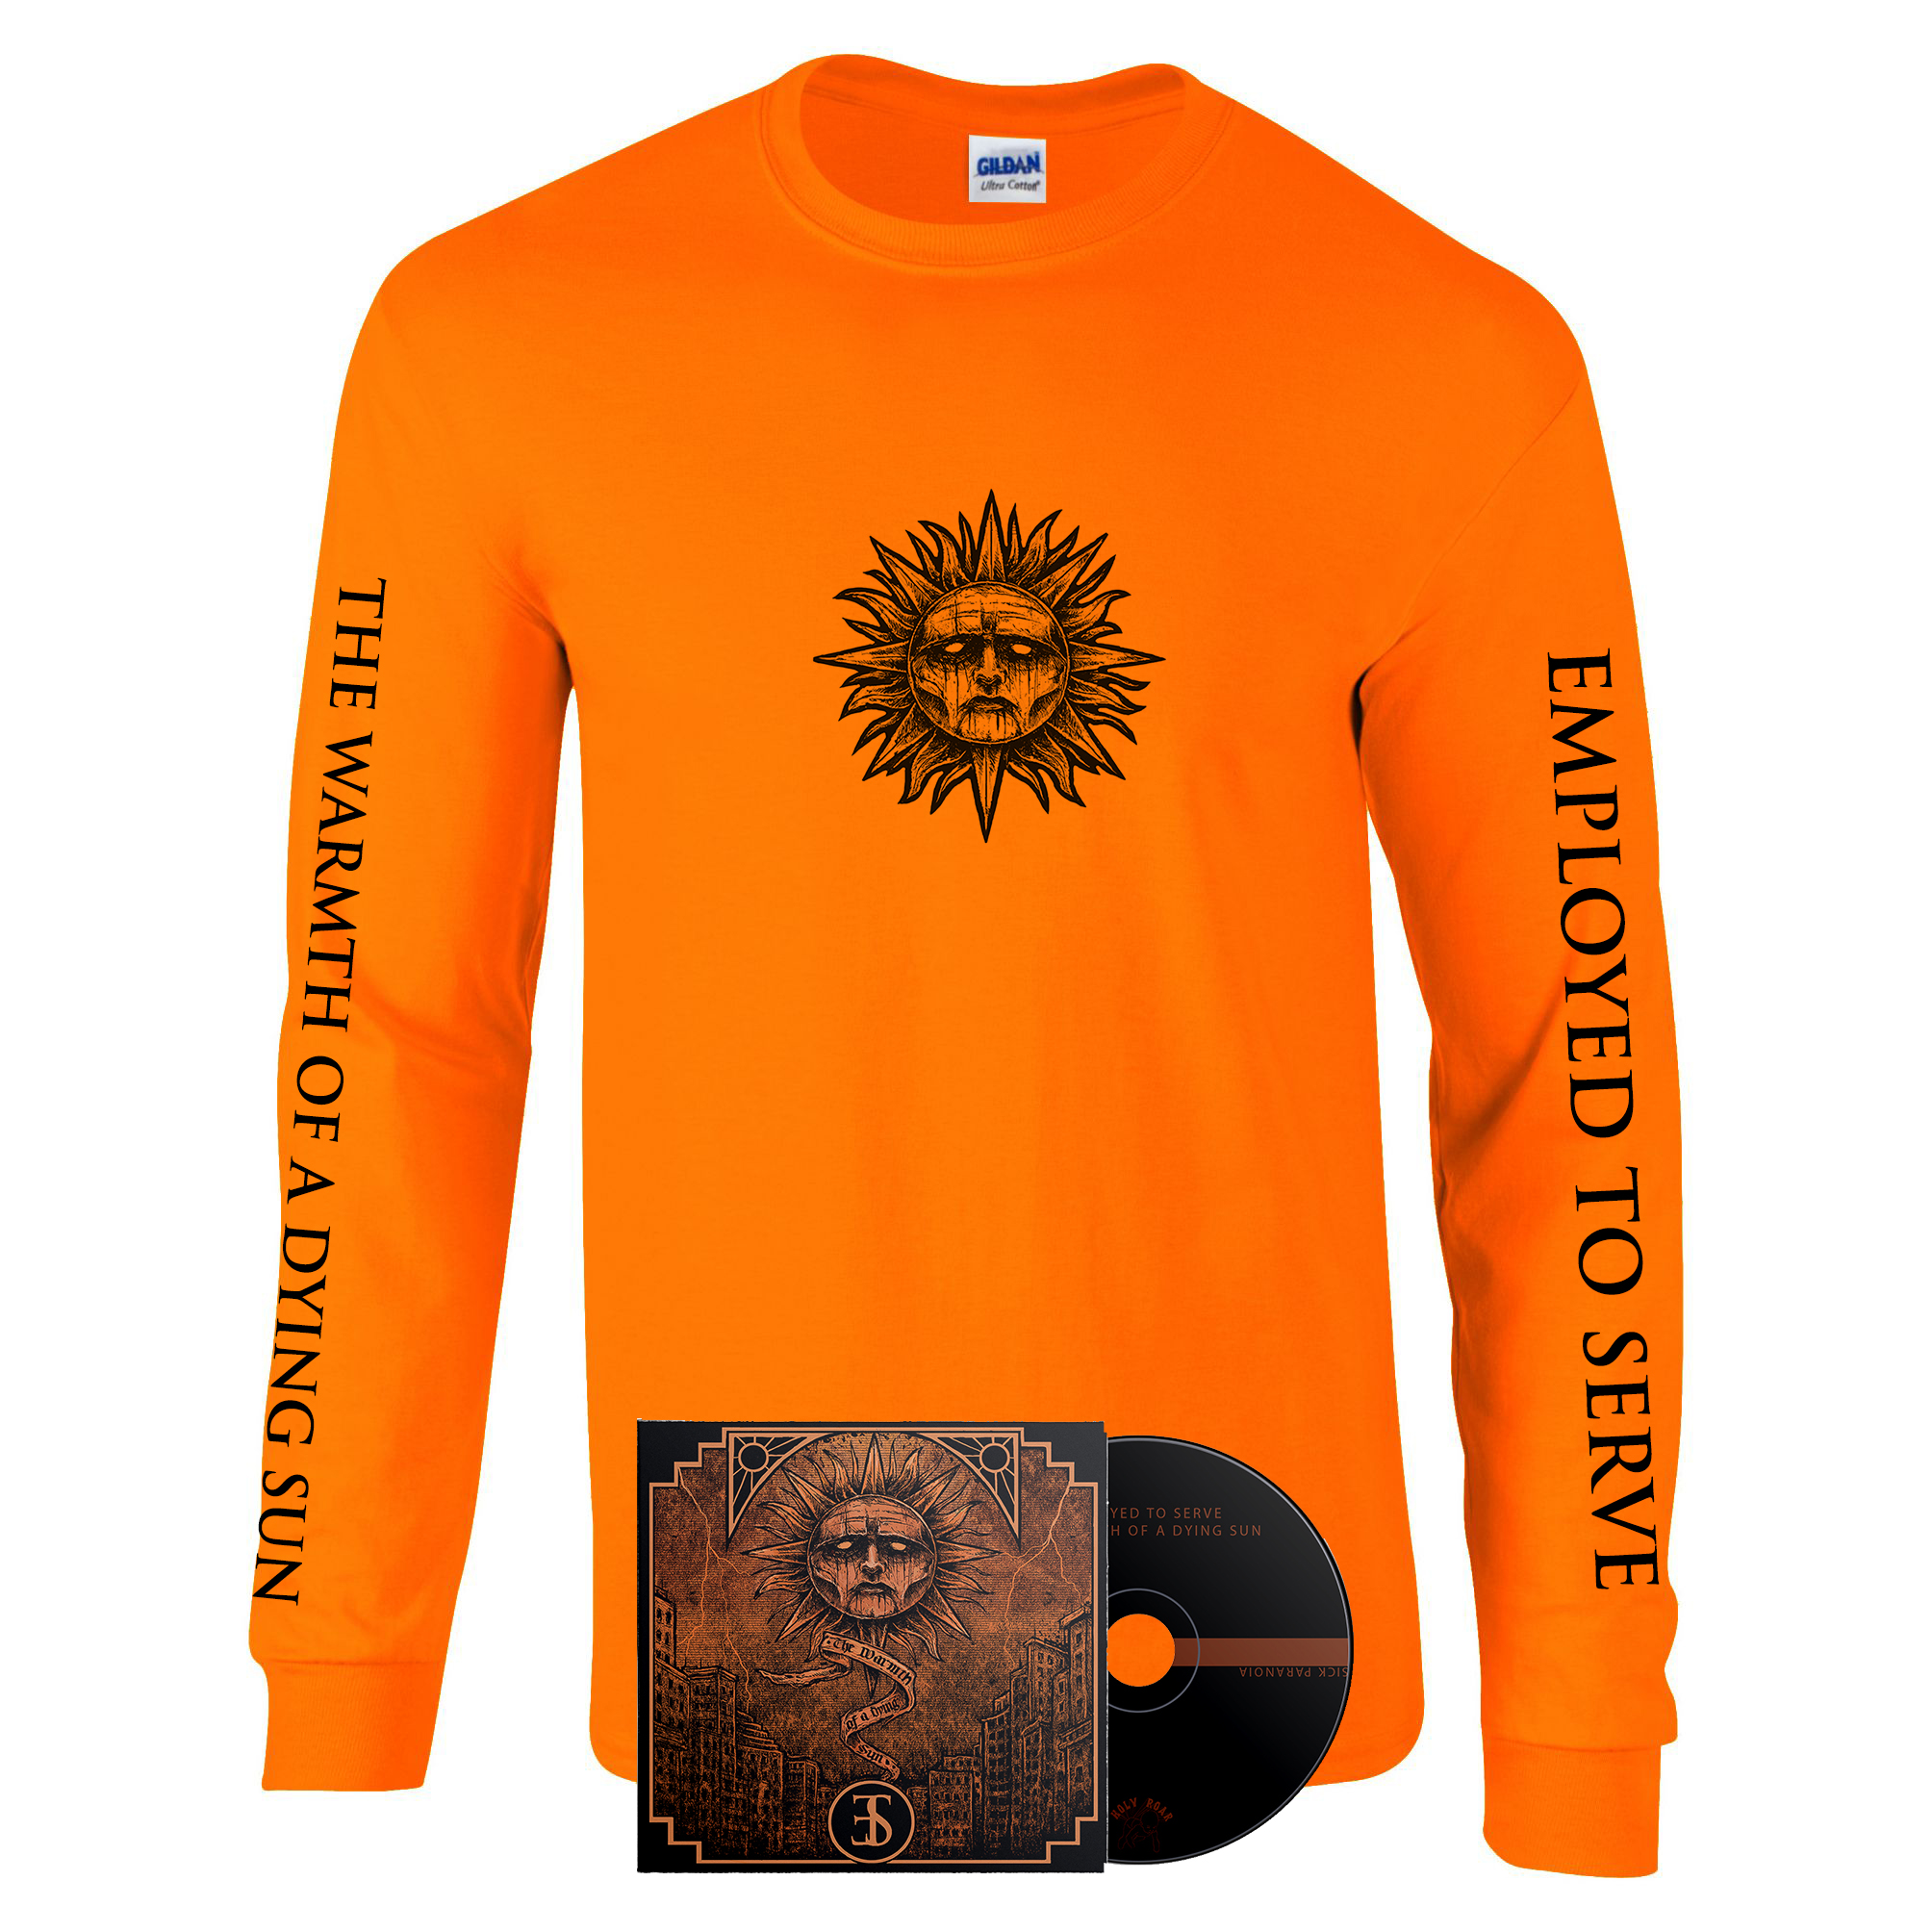 Employed To Serve - The Warmth Of A Dying Sun long sleeve + CD PREORDER